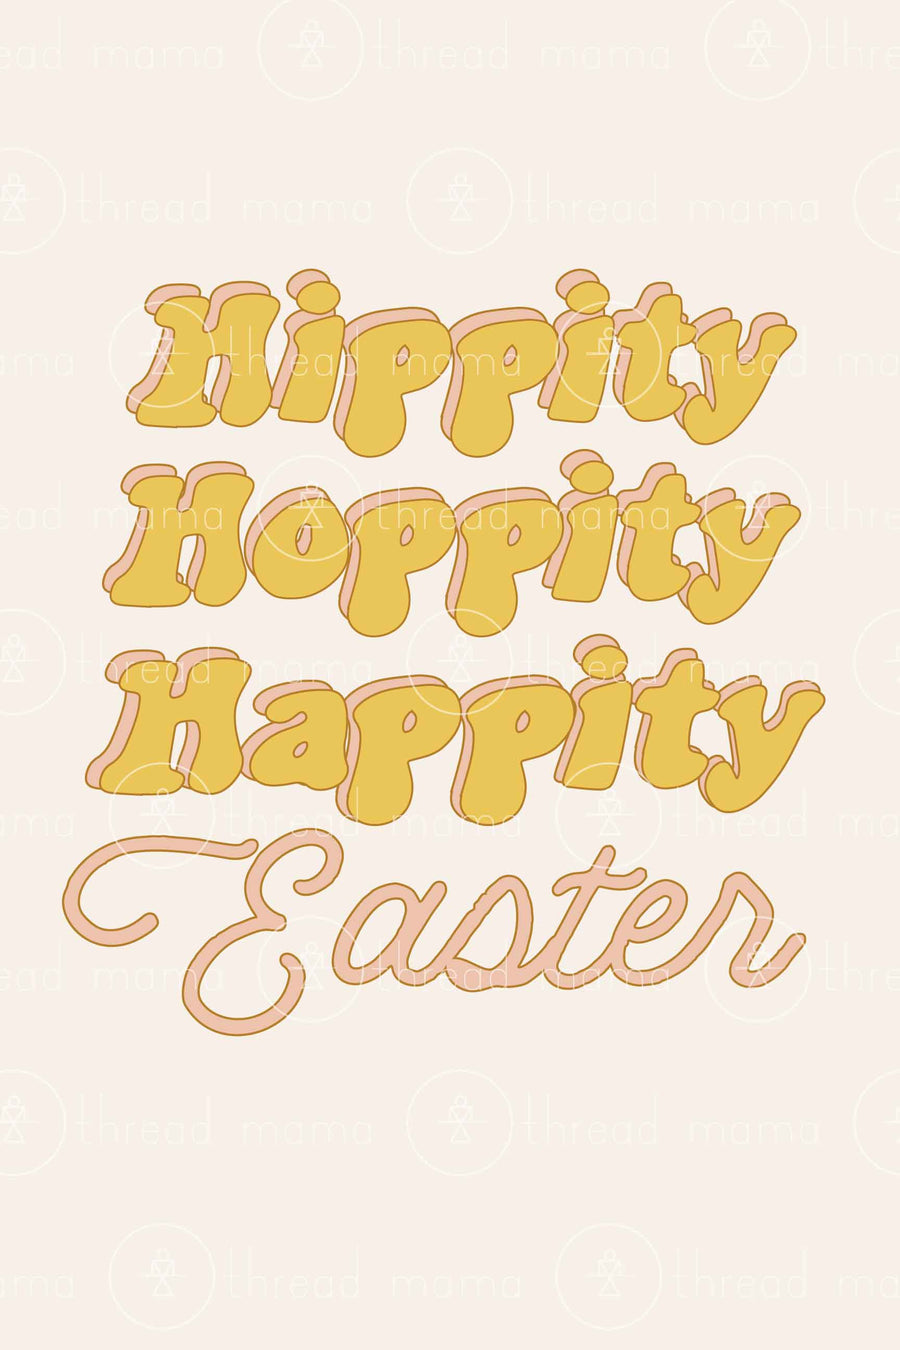 Hippity Hoppity Happity Easter (Printable Poster)